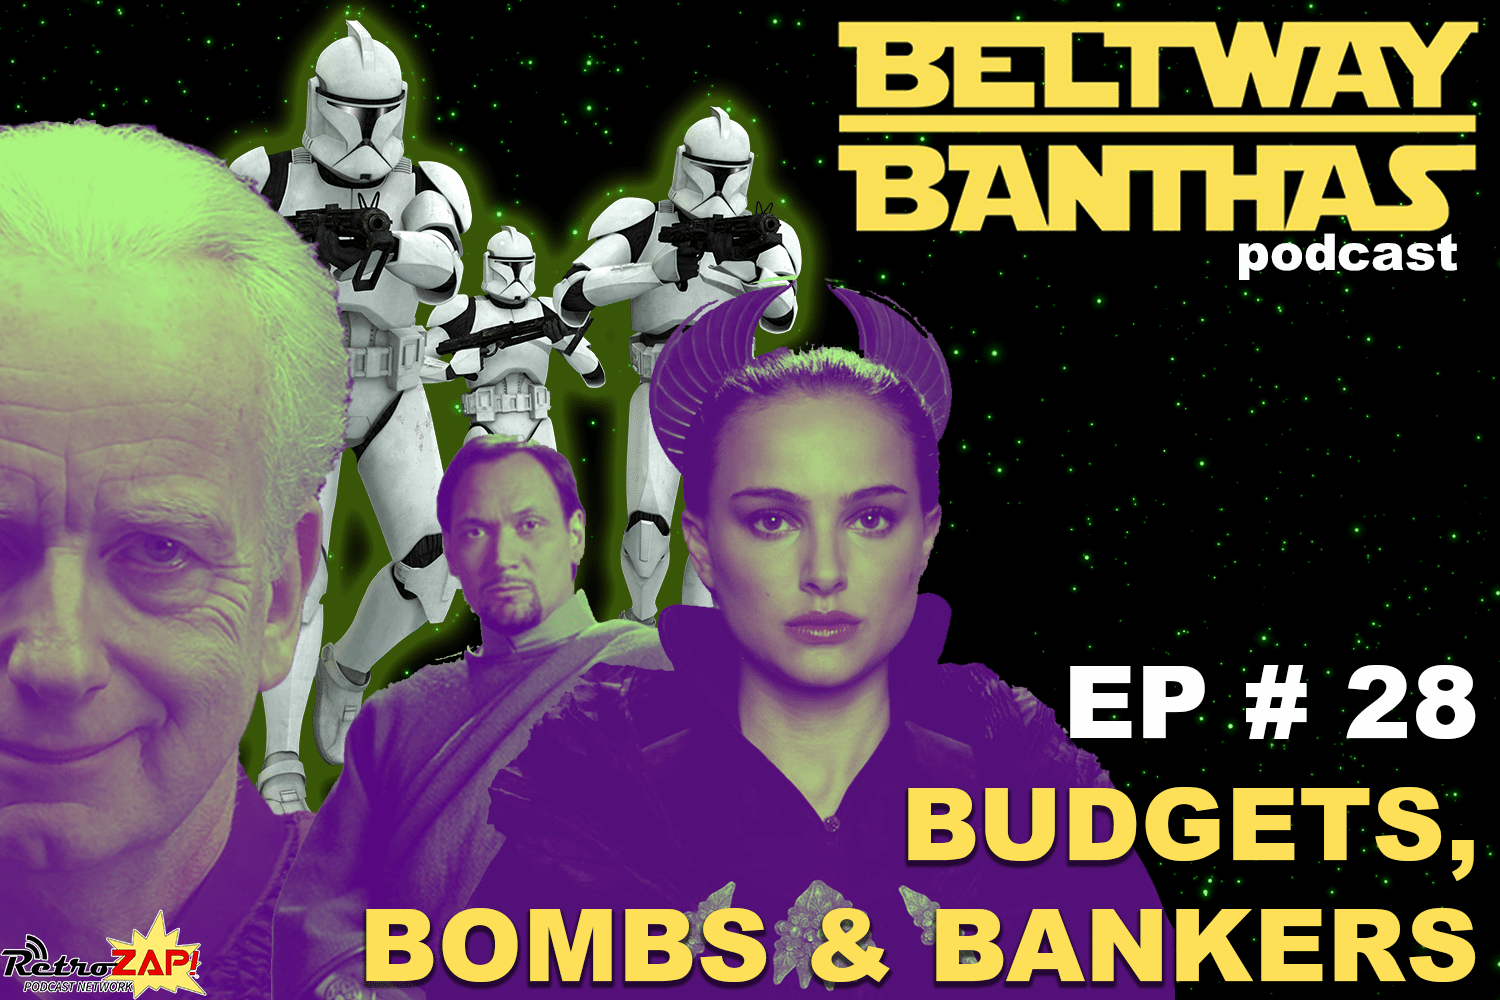 Beltway Banthas #28: Budgets, Bombs & Bankers